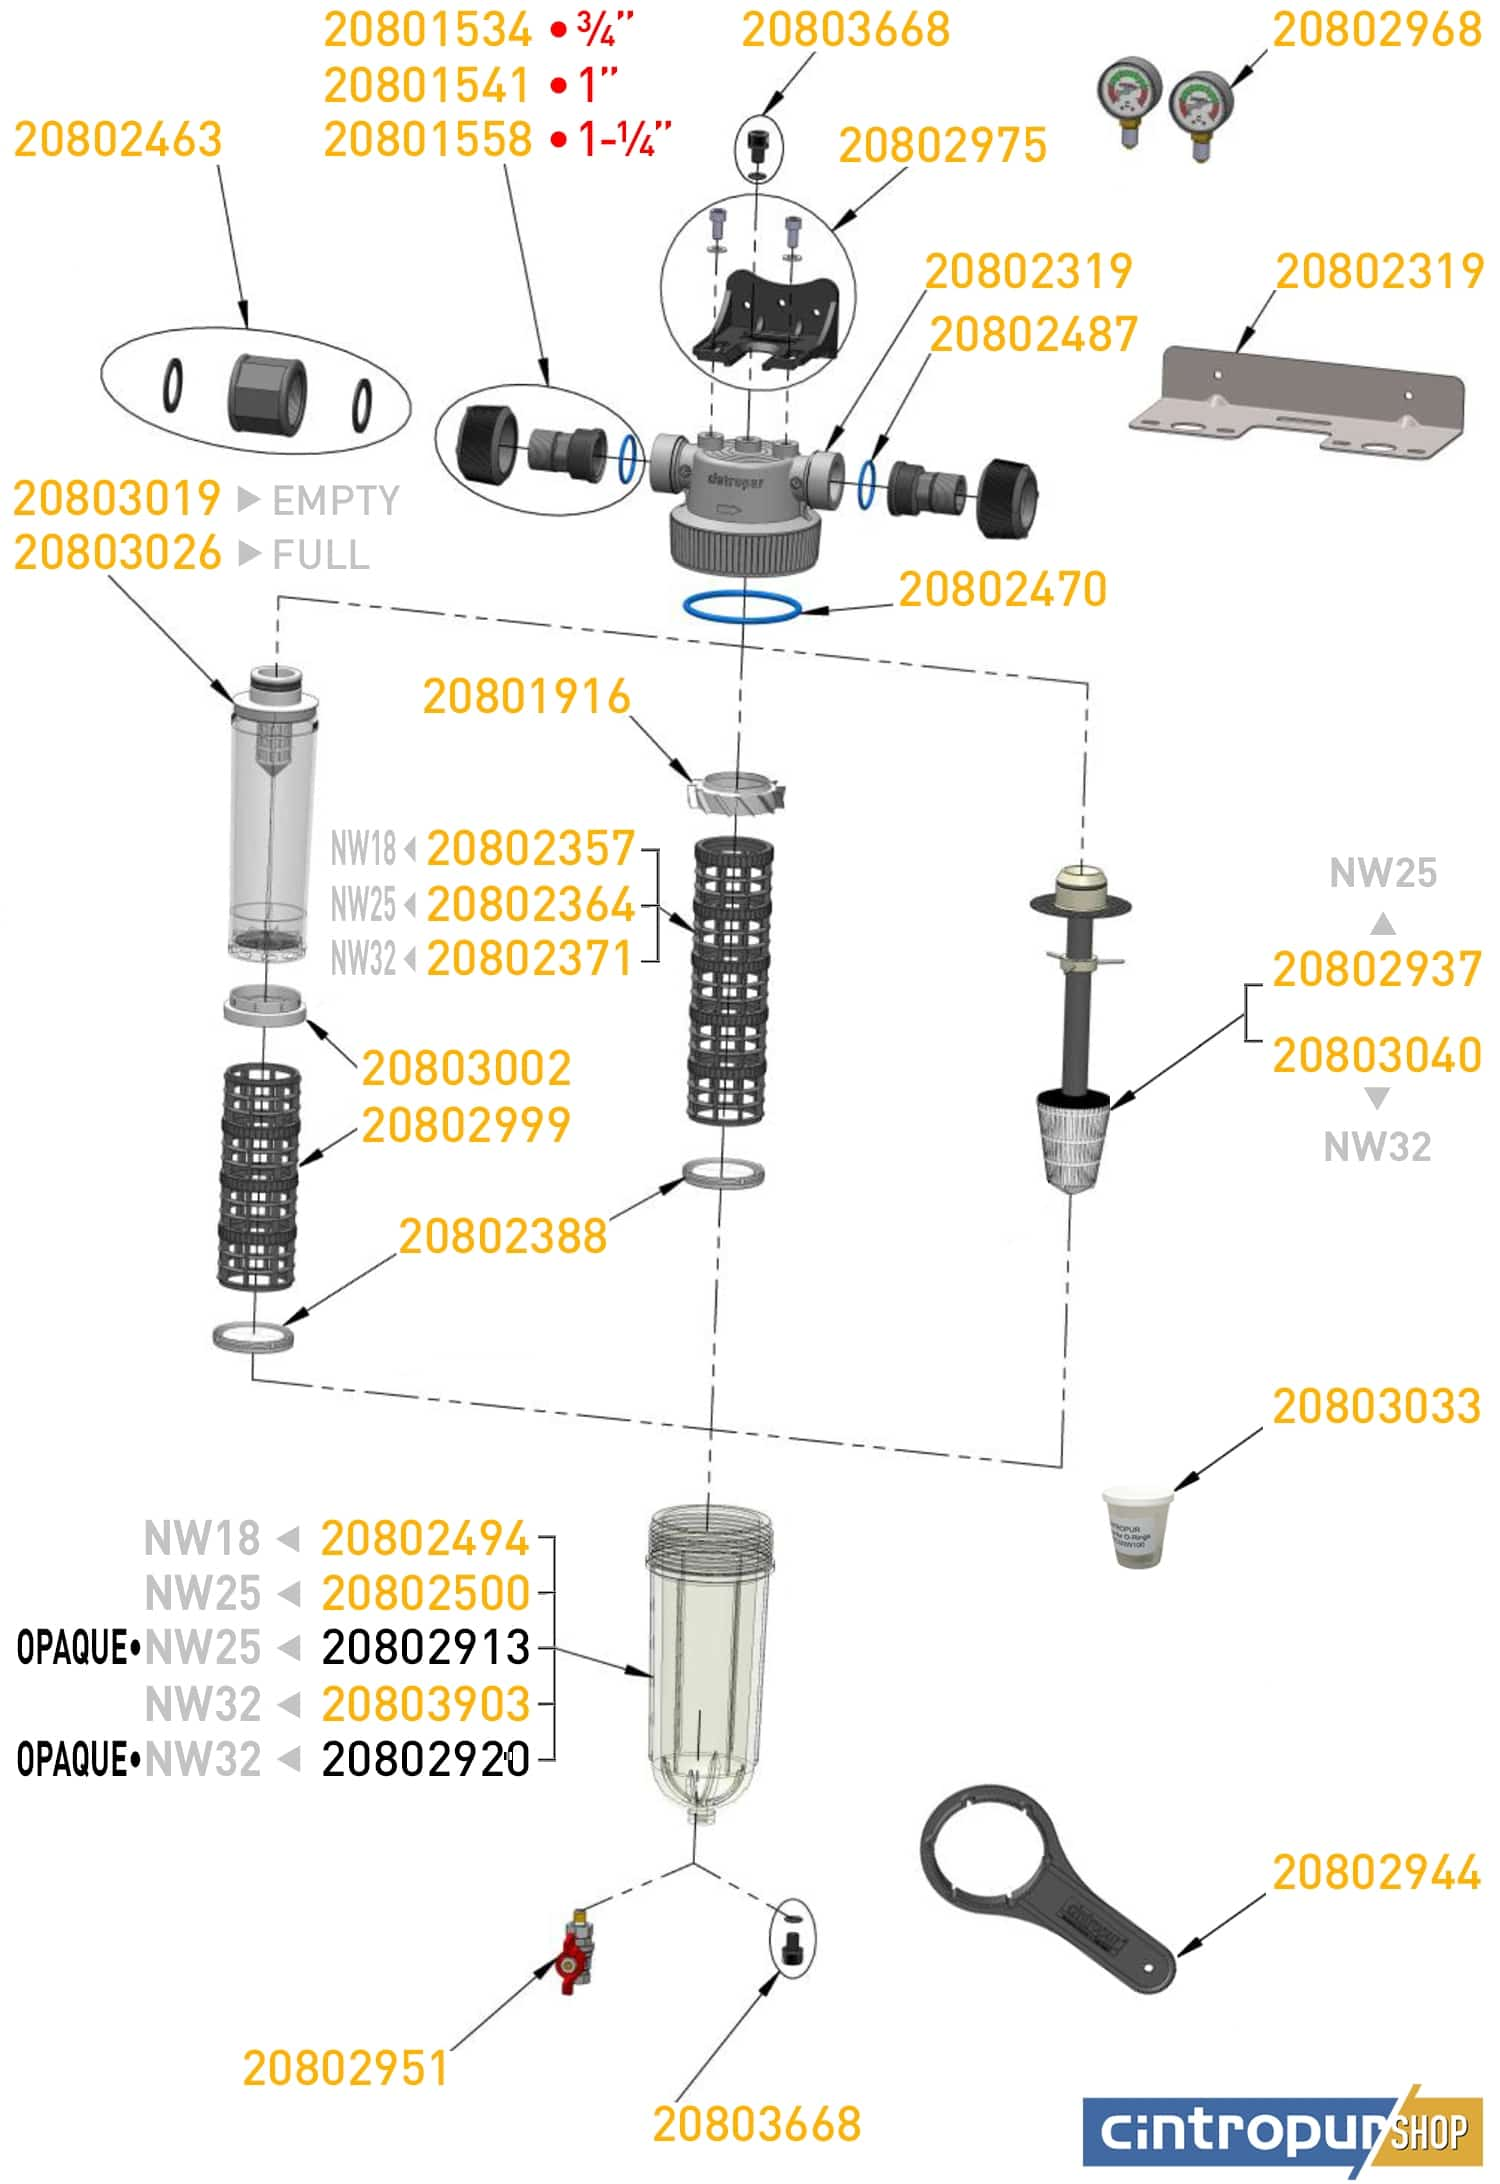 Diagram to find a Domestic Line spare part Cintropur with SKU code